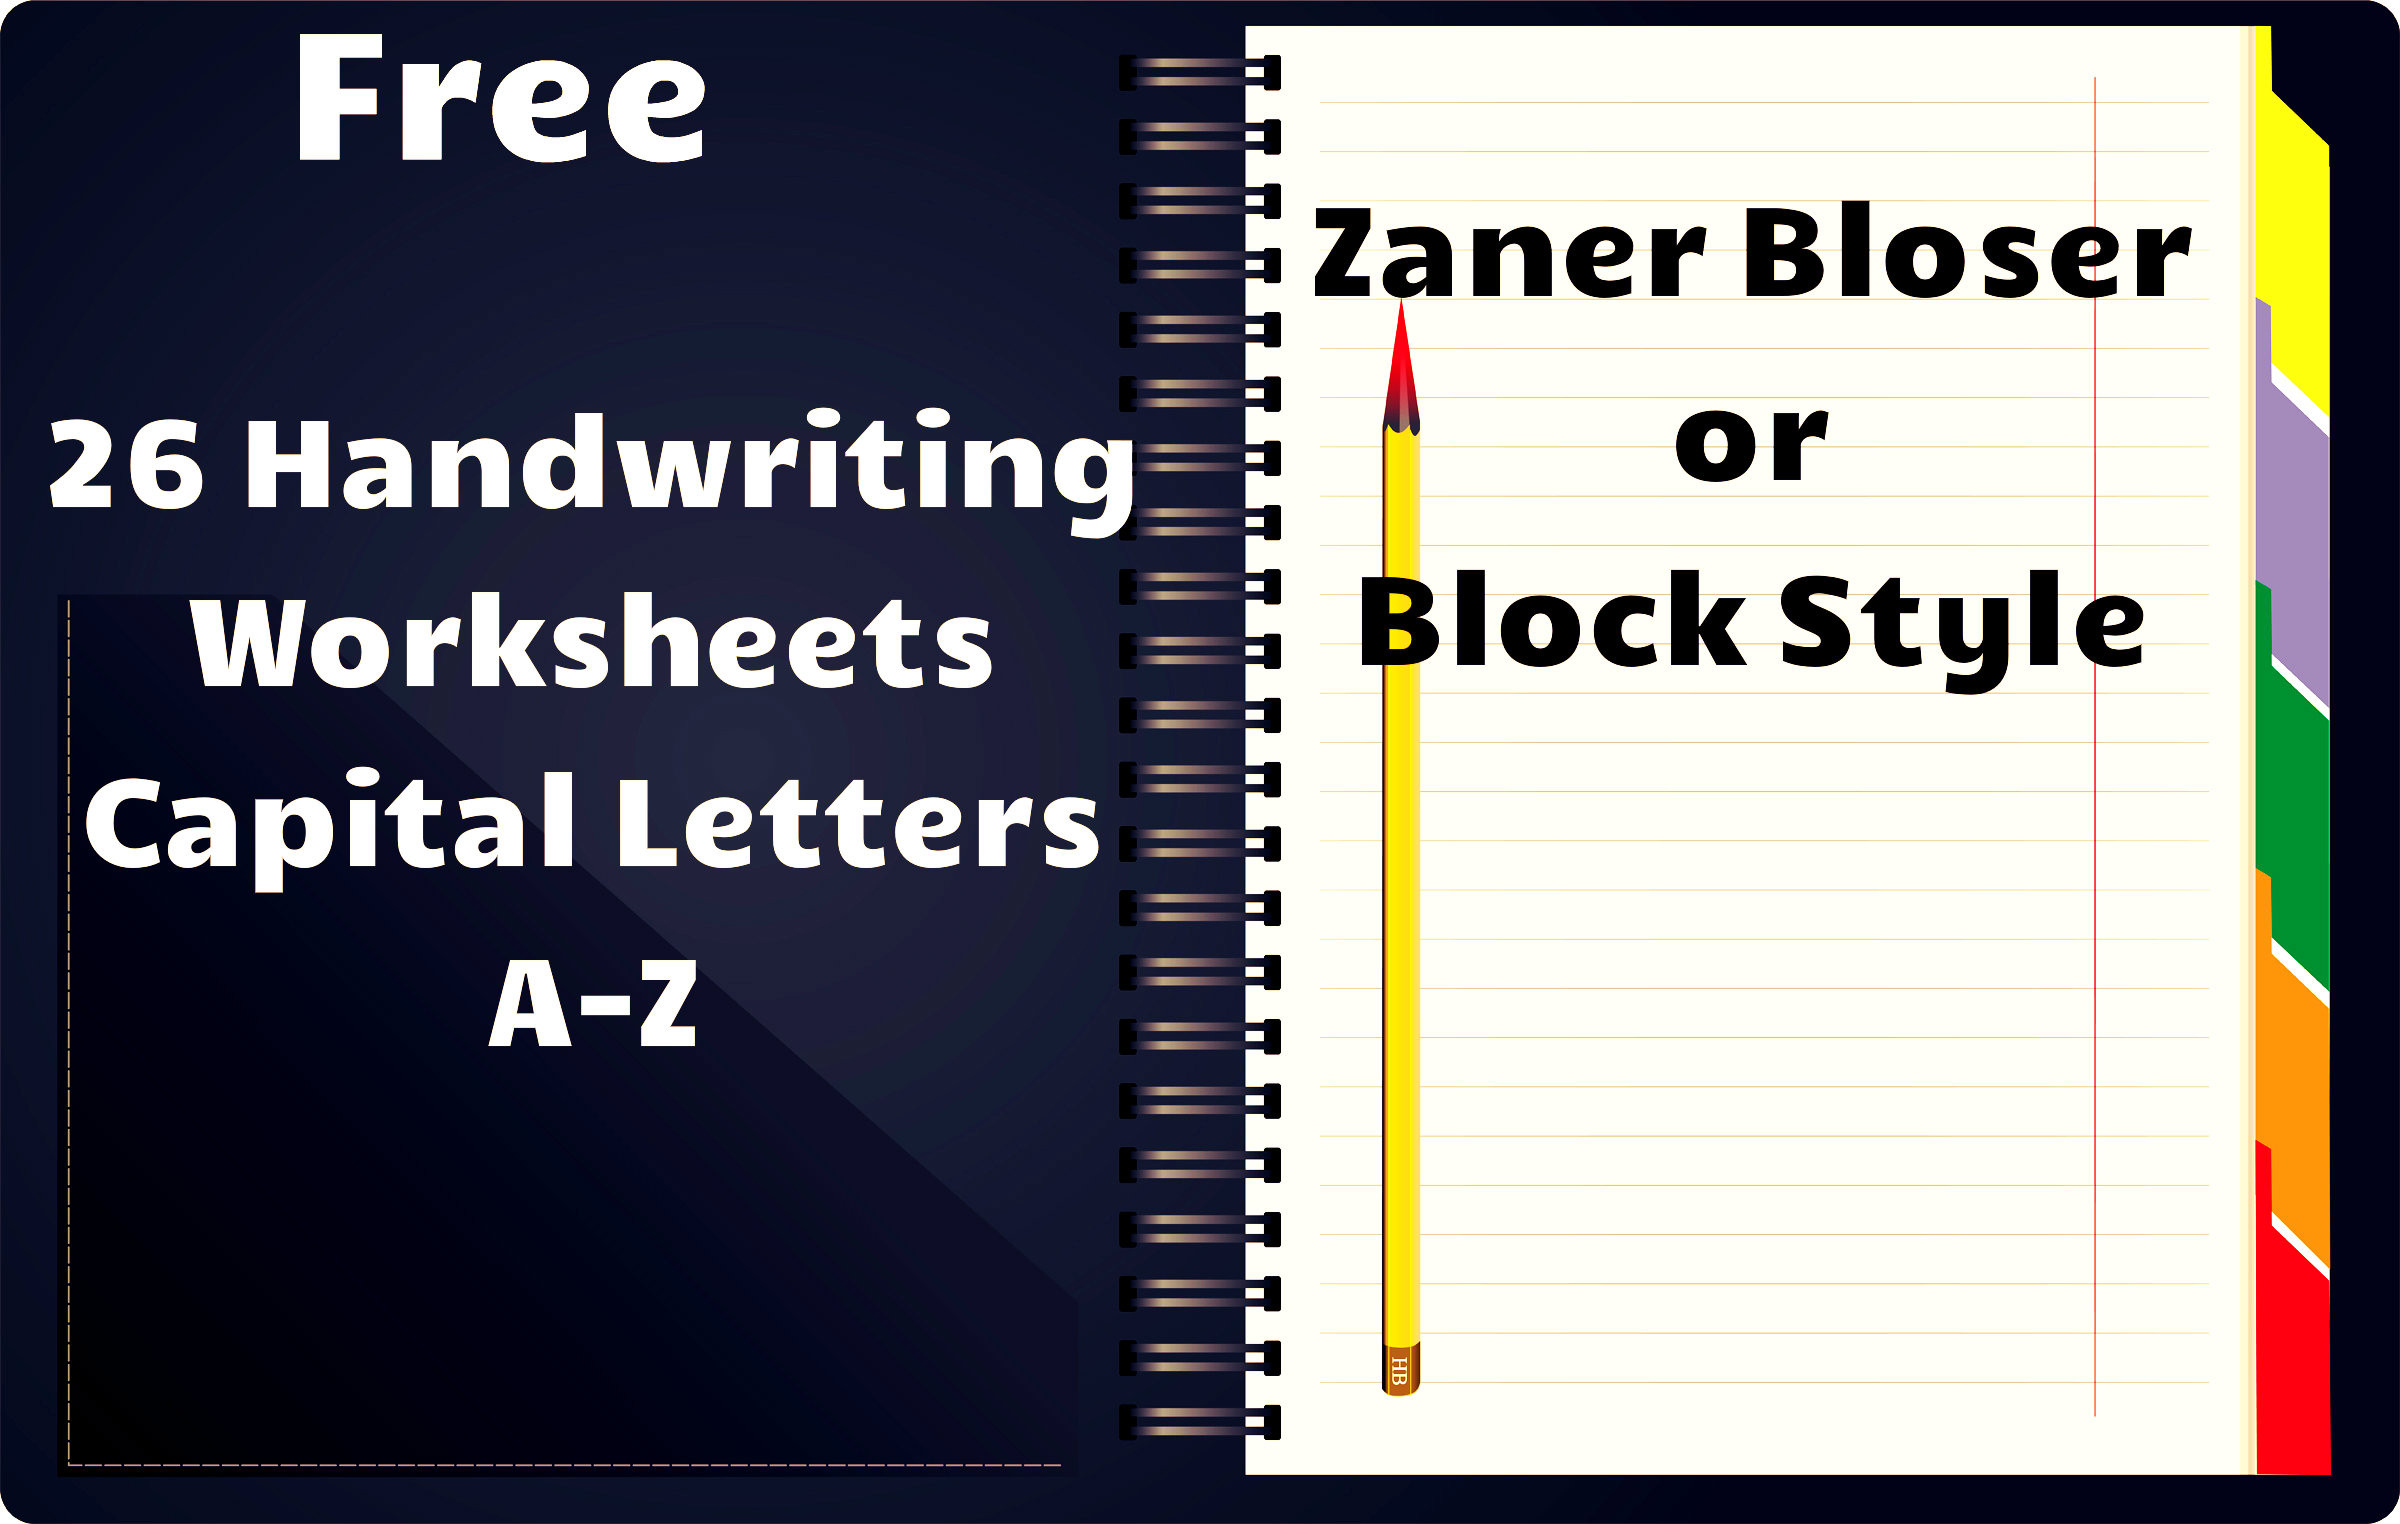 Zaner Bloser Handwriting Worksheet Free Handwriting Worksheets A Z